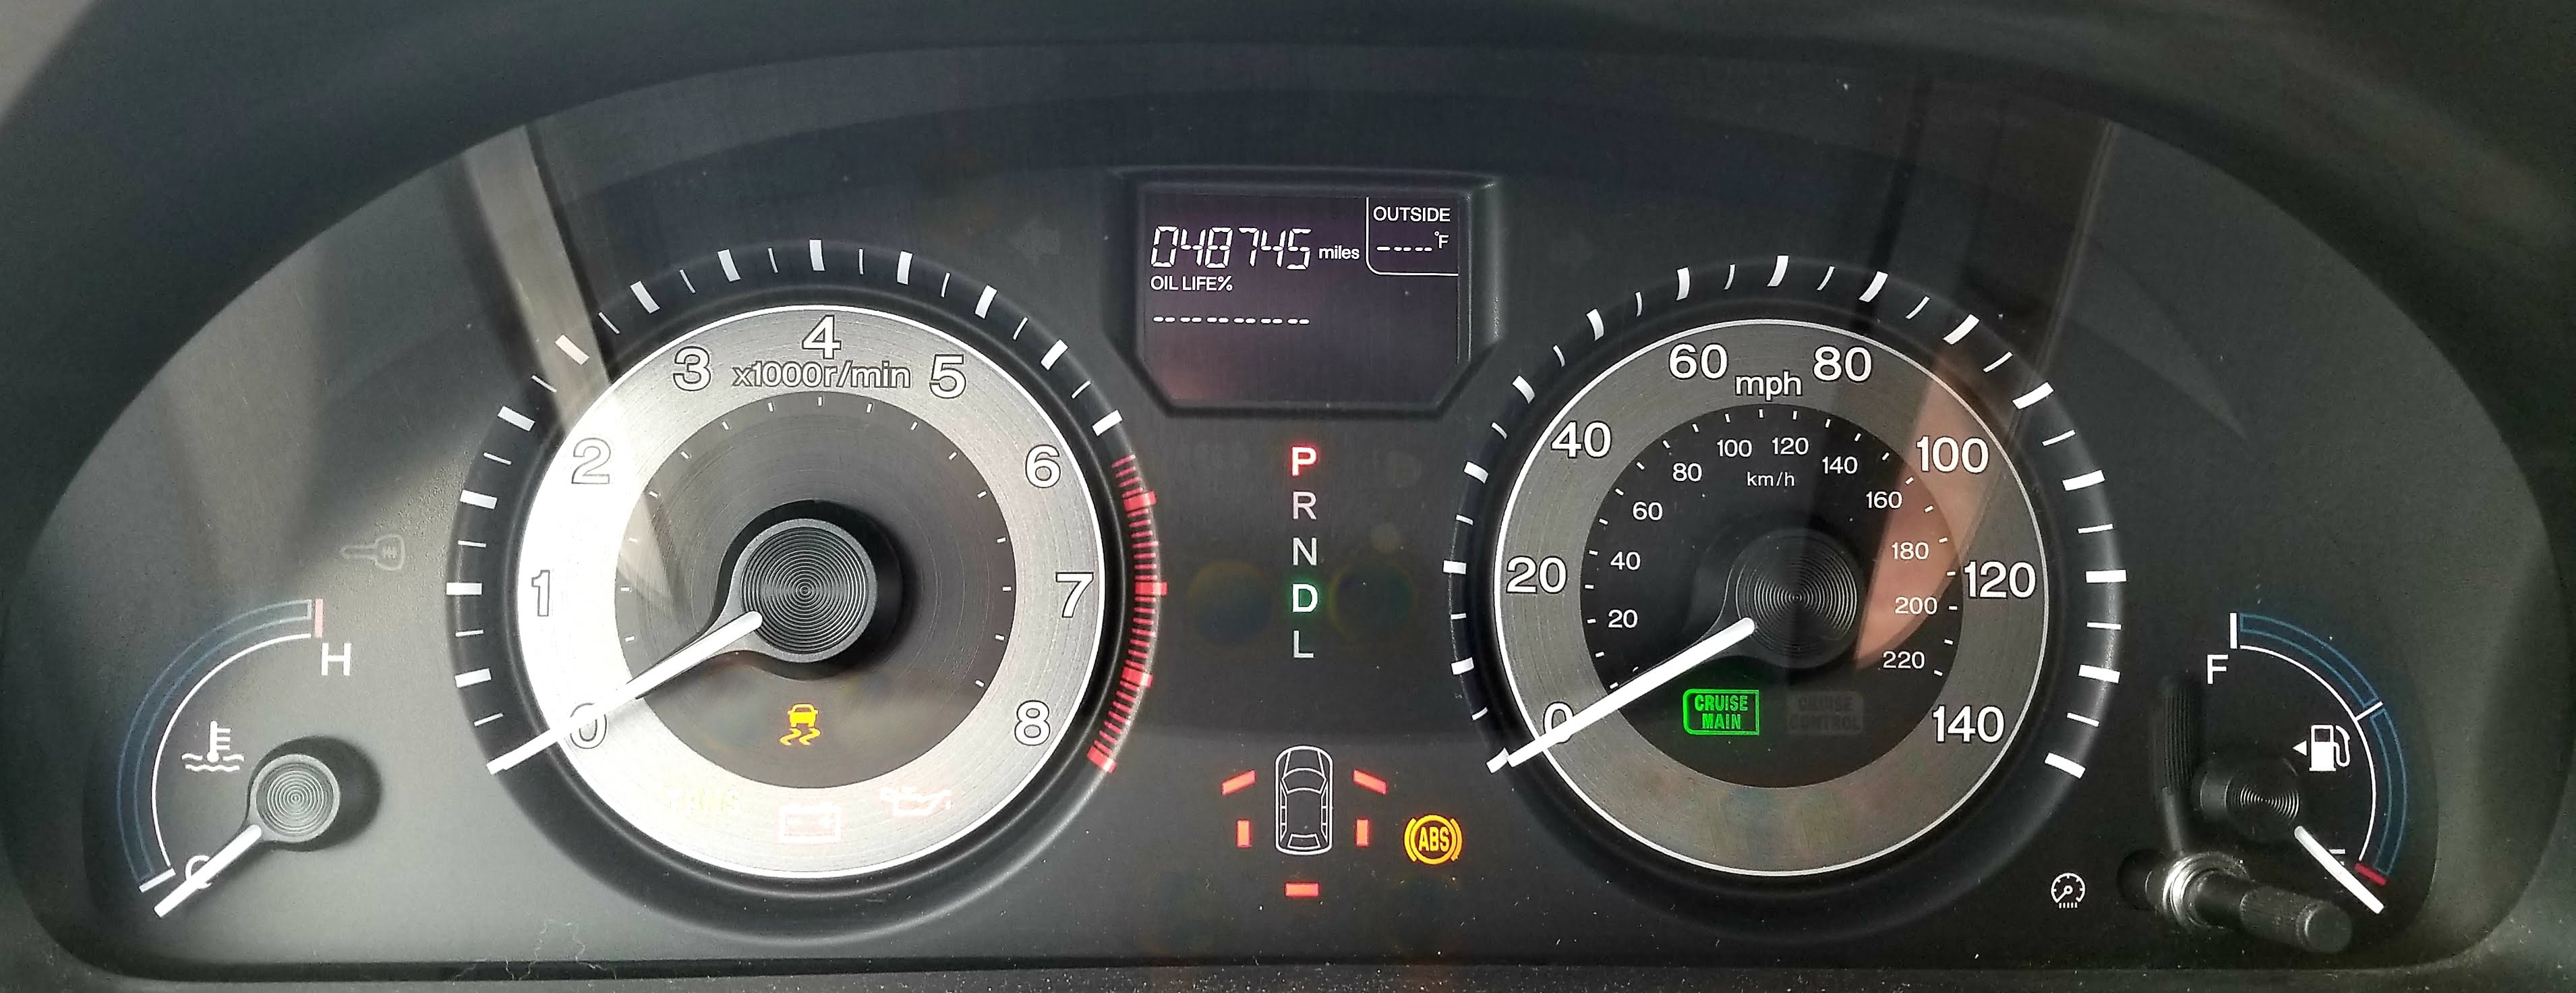 Honda ABS & VSA Dash Lights Stay On? – Easy Fault Reset